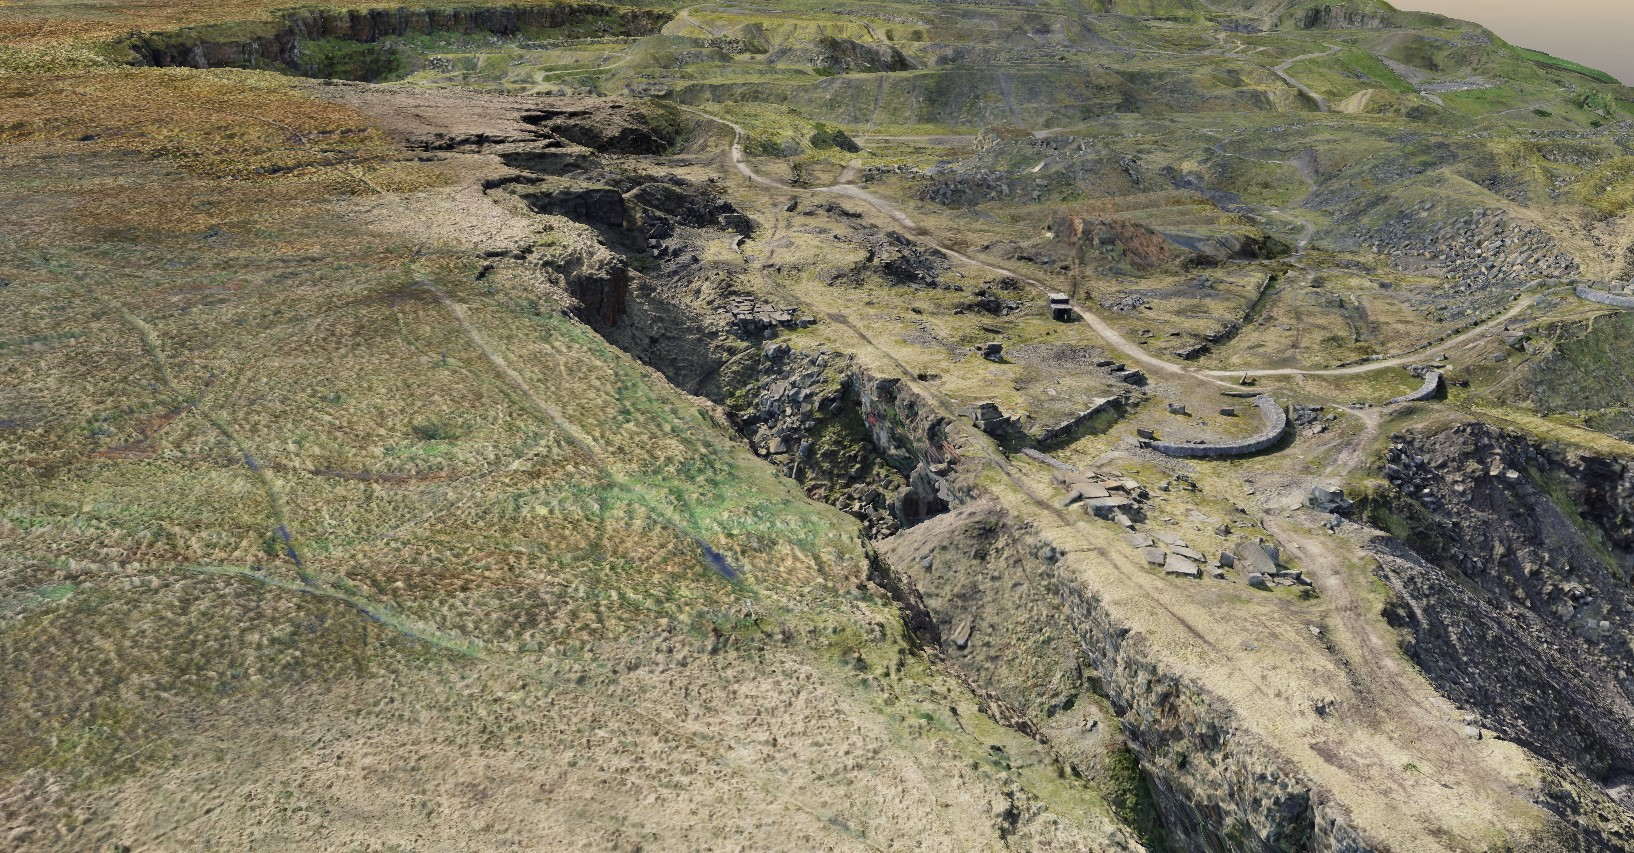 lee quarry rossendale quarry heritage valley of stone